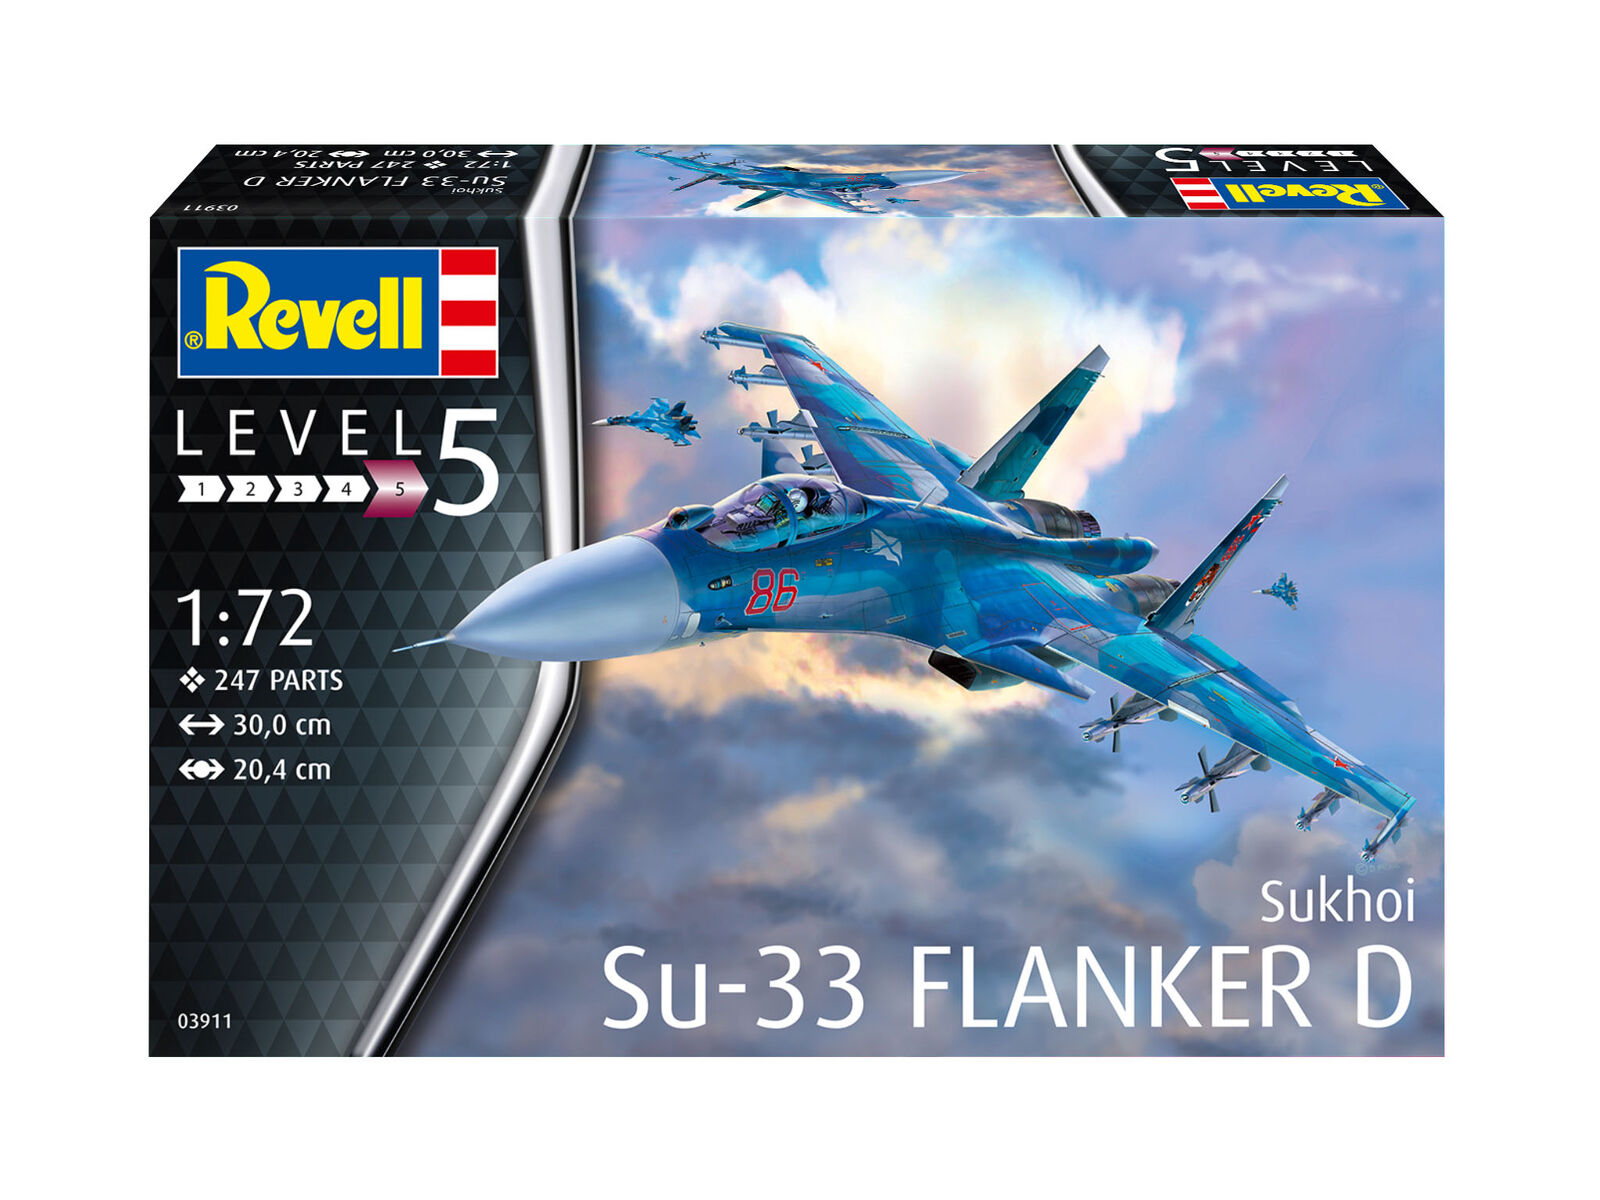 Sukhoi Su-33 Navy Flanker Kit REVELL HOBBY '1 72 RV03911 Model